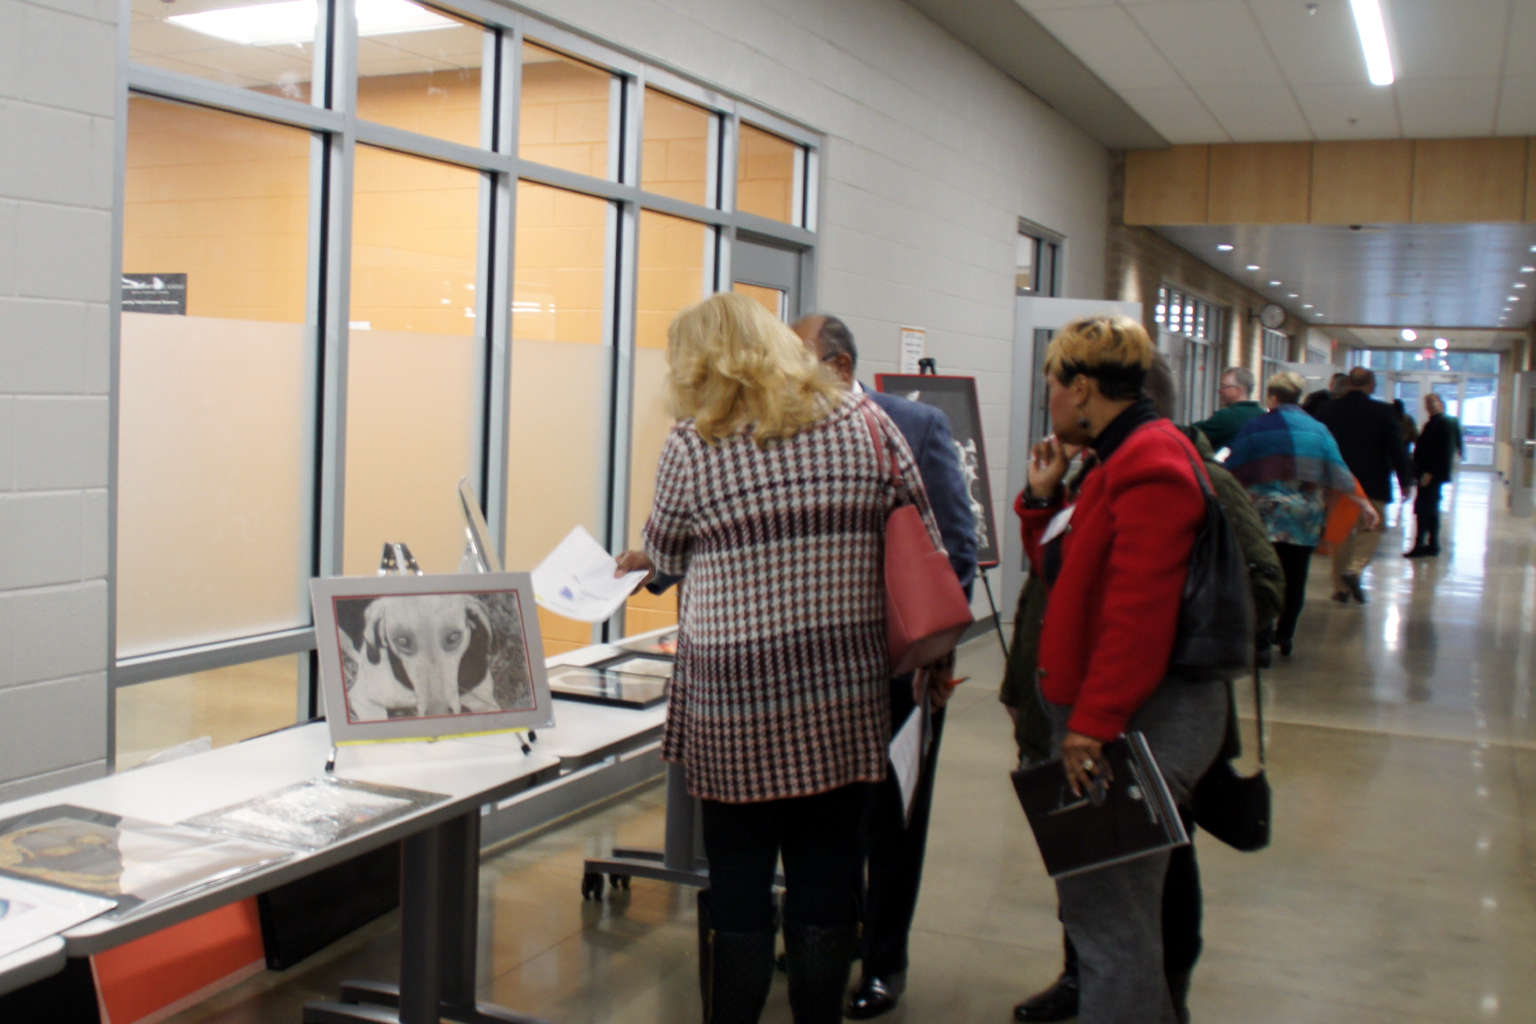 Art Judges viewing artwork at the Southside Regional Forum